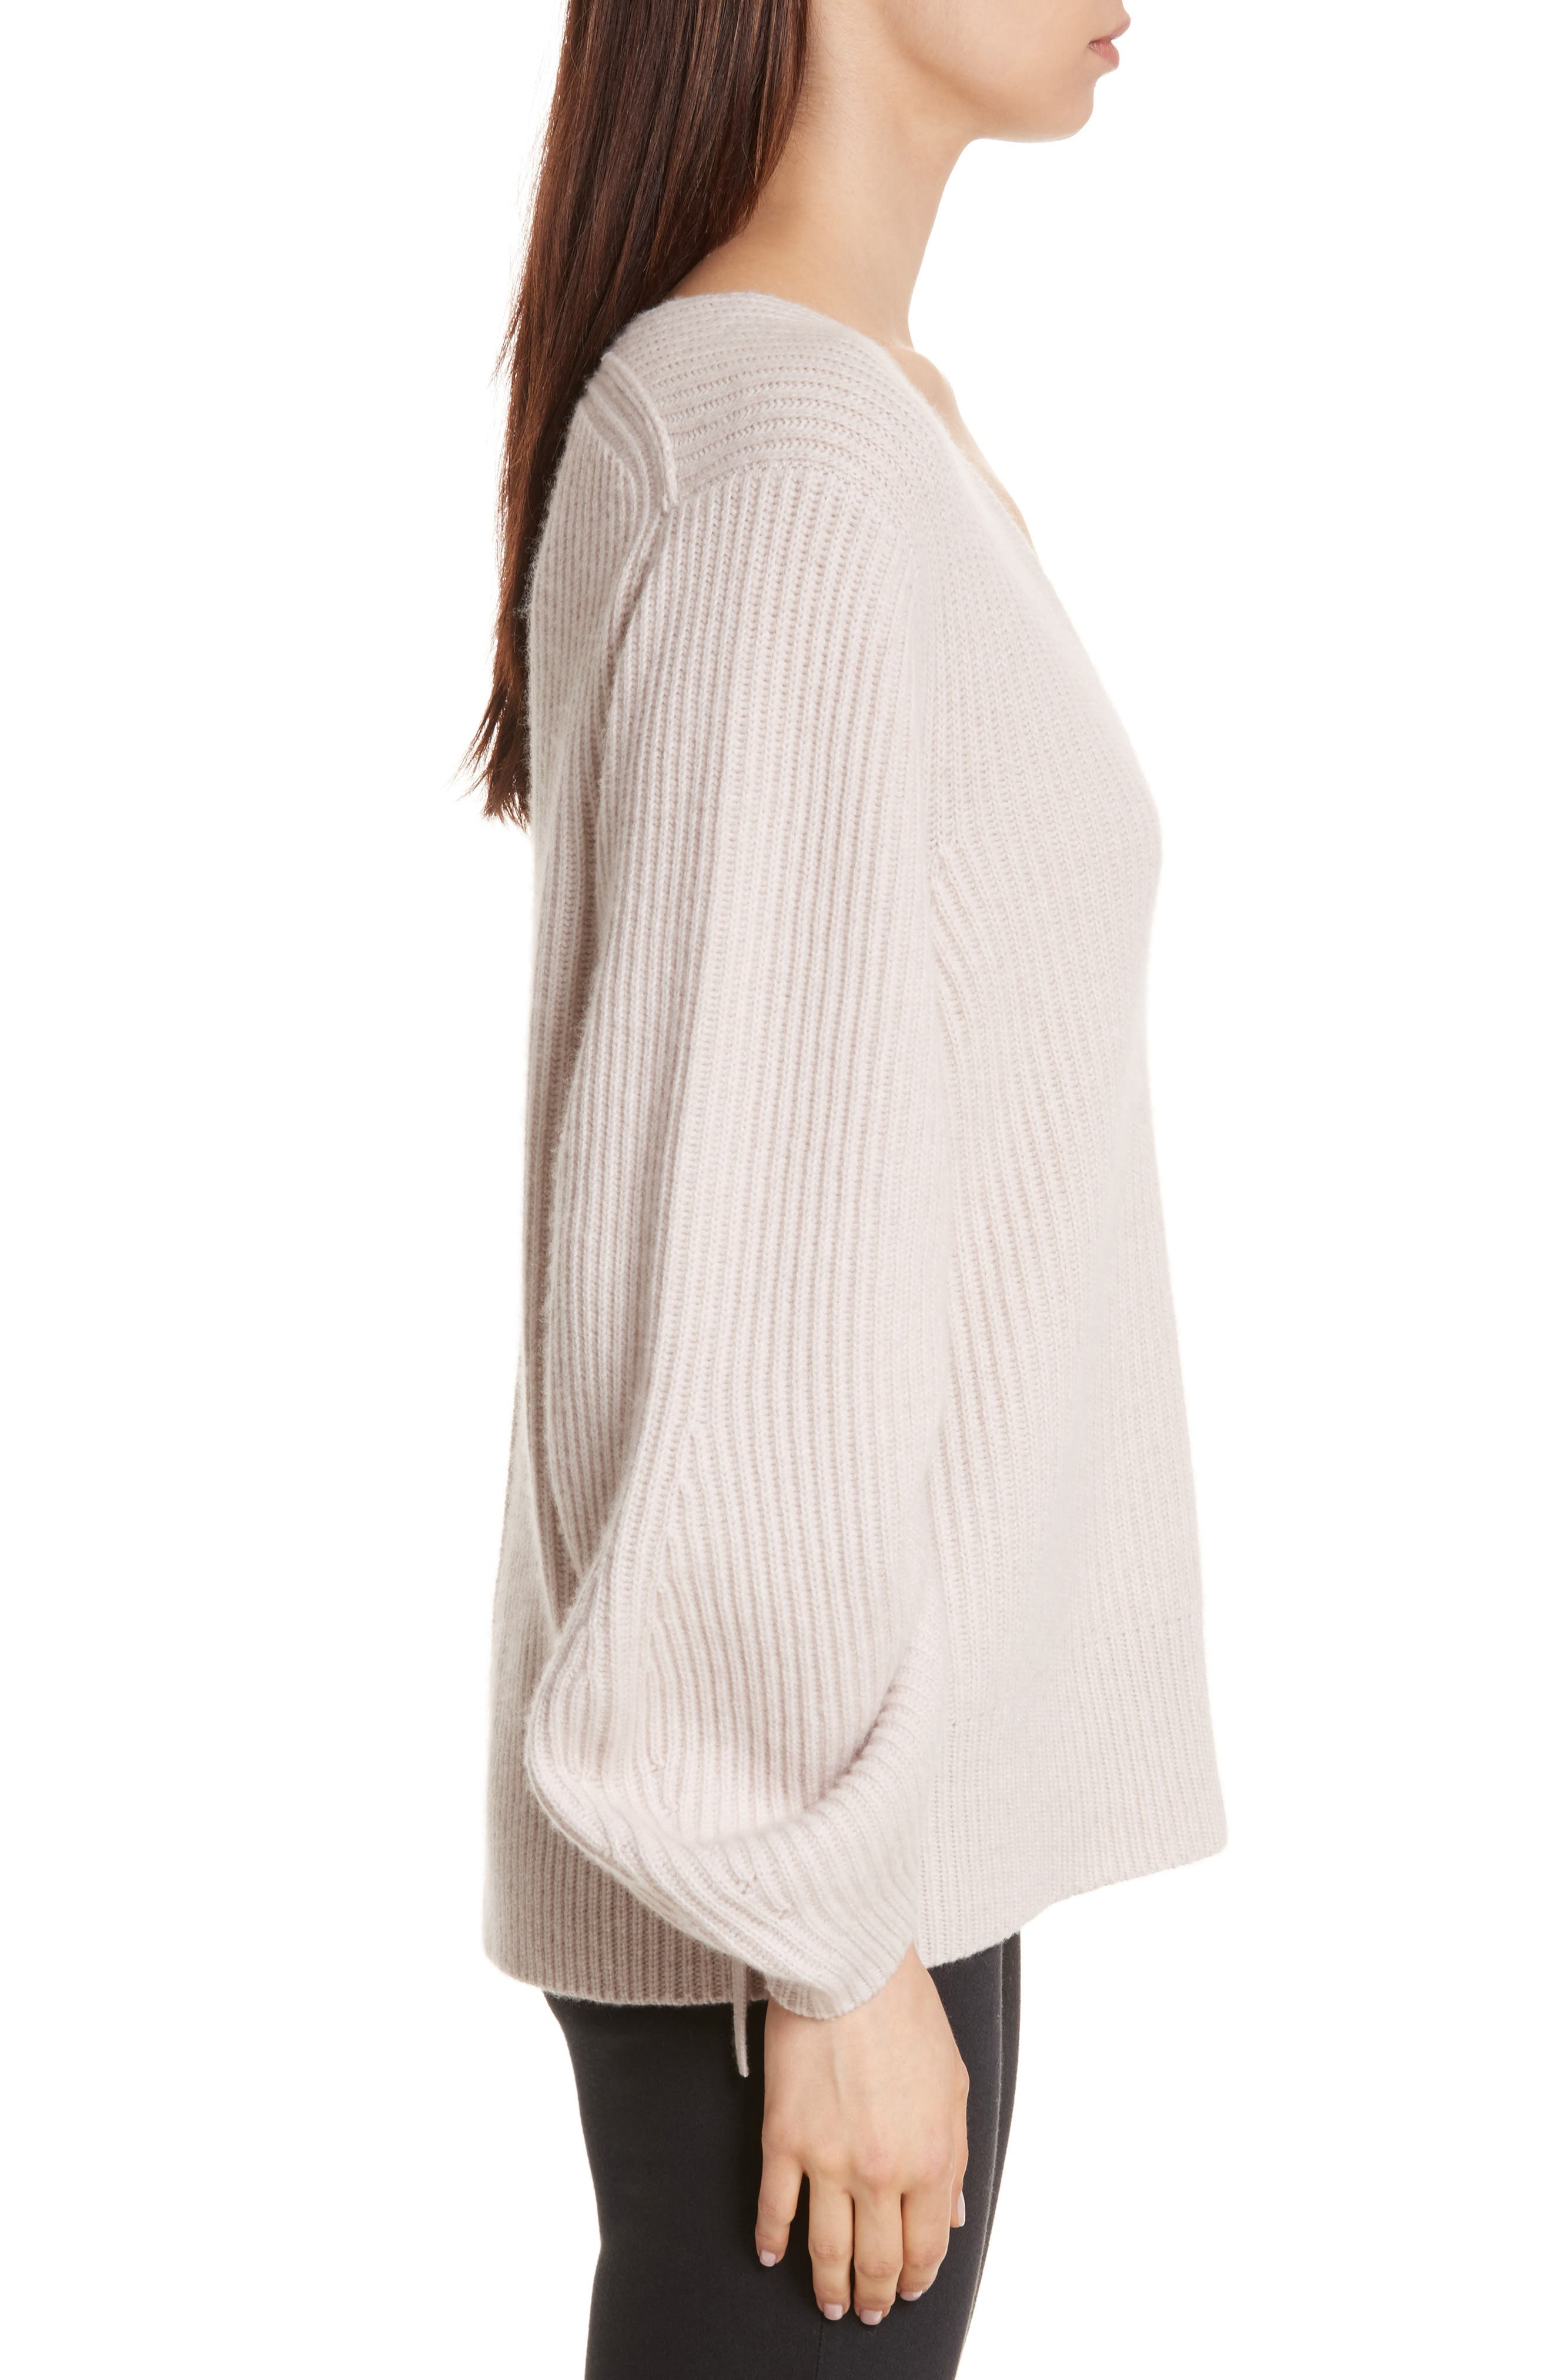 Anneka Wool & Cashmere Puff Sleeve Sweater,                             Alternate thumbnail 3, color,                             270